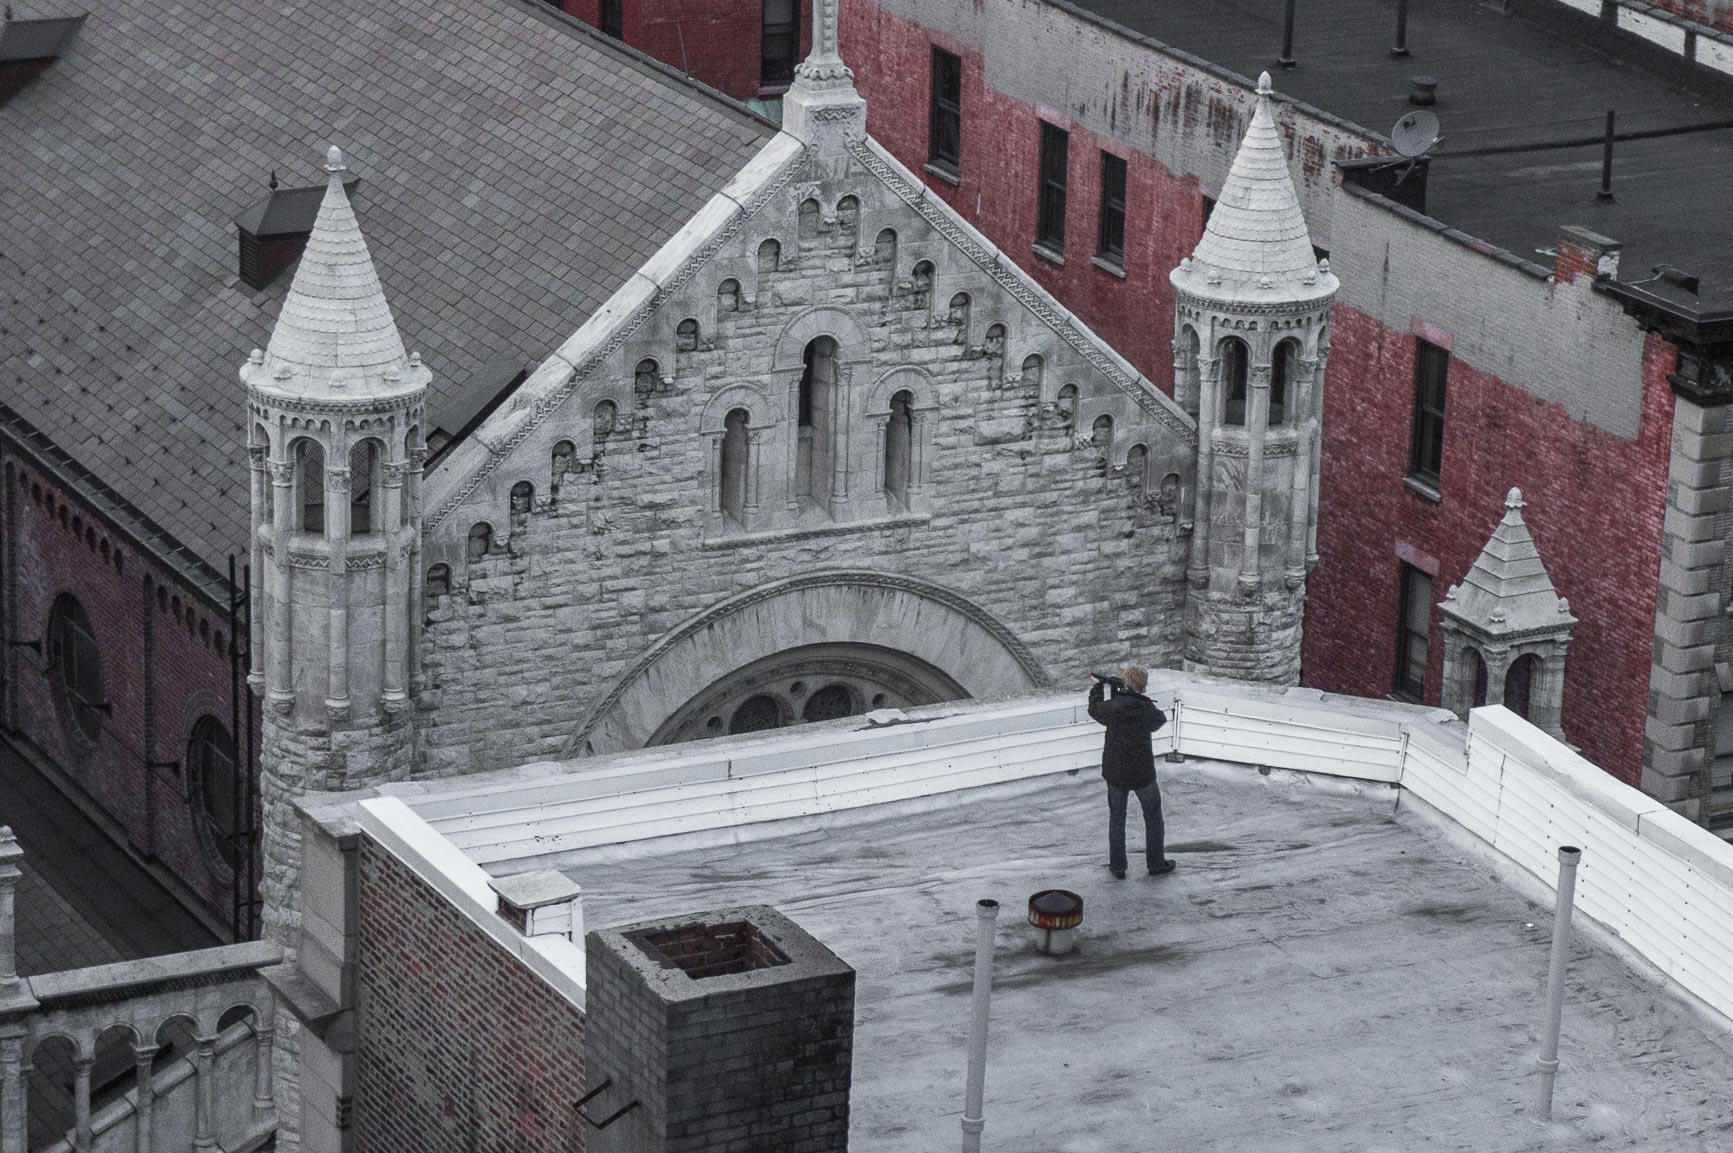 Teen with Toy Gun on Roof